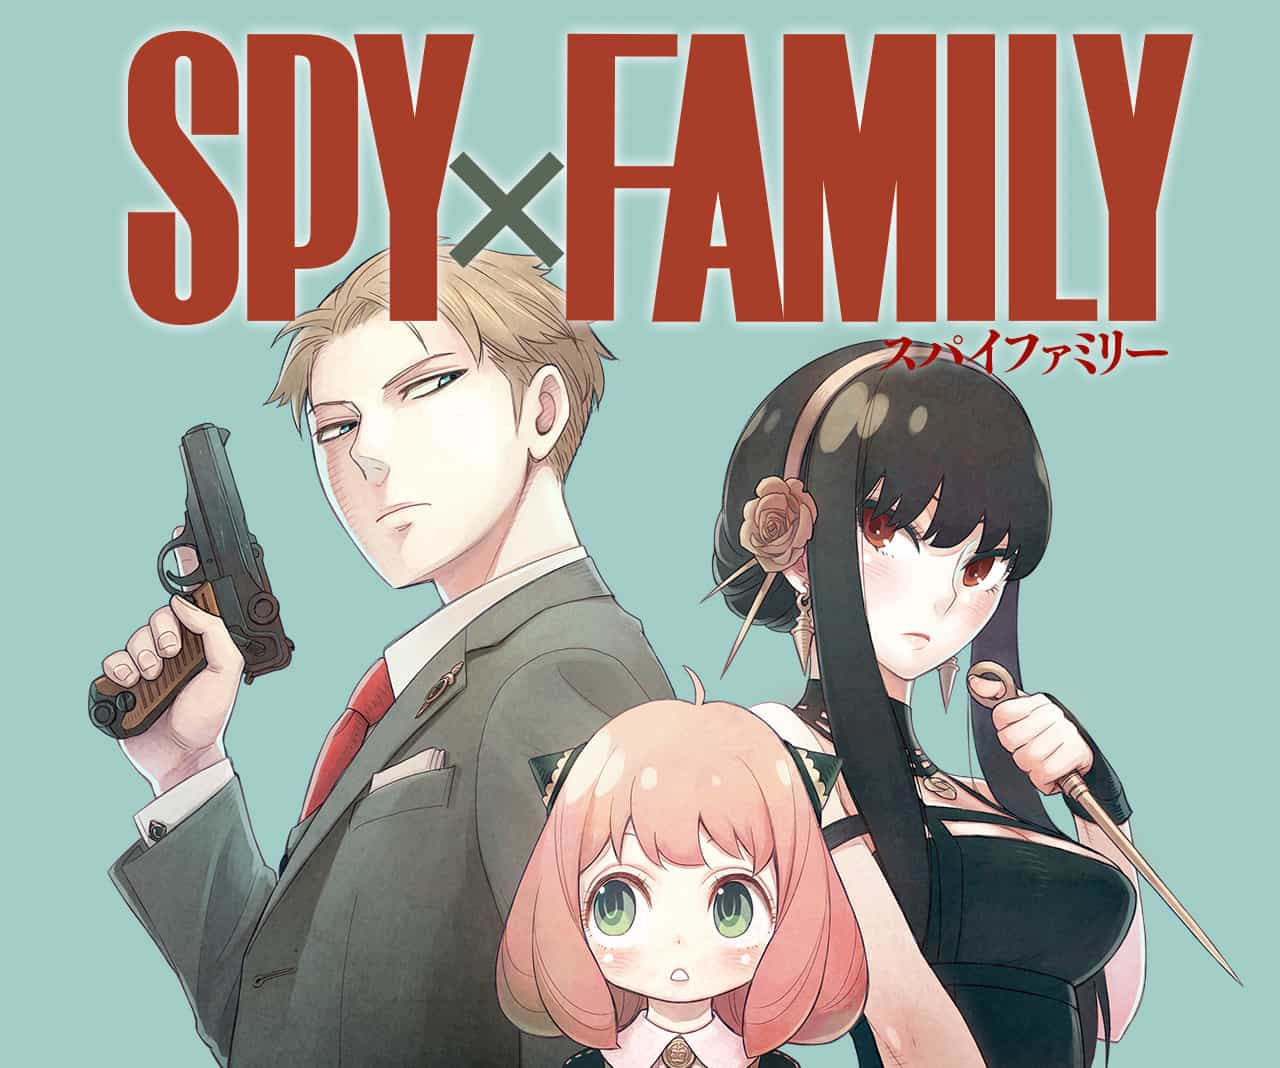 SPY X FAMILY, Manga Berkisah